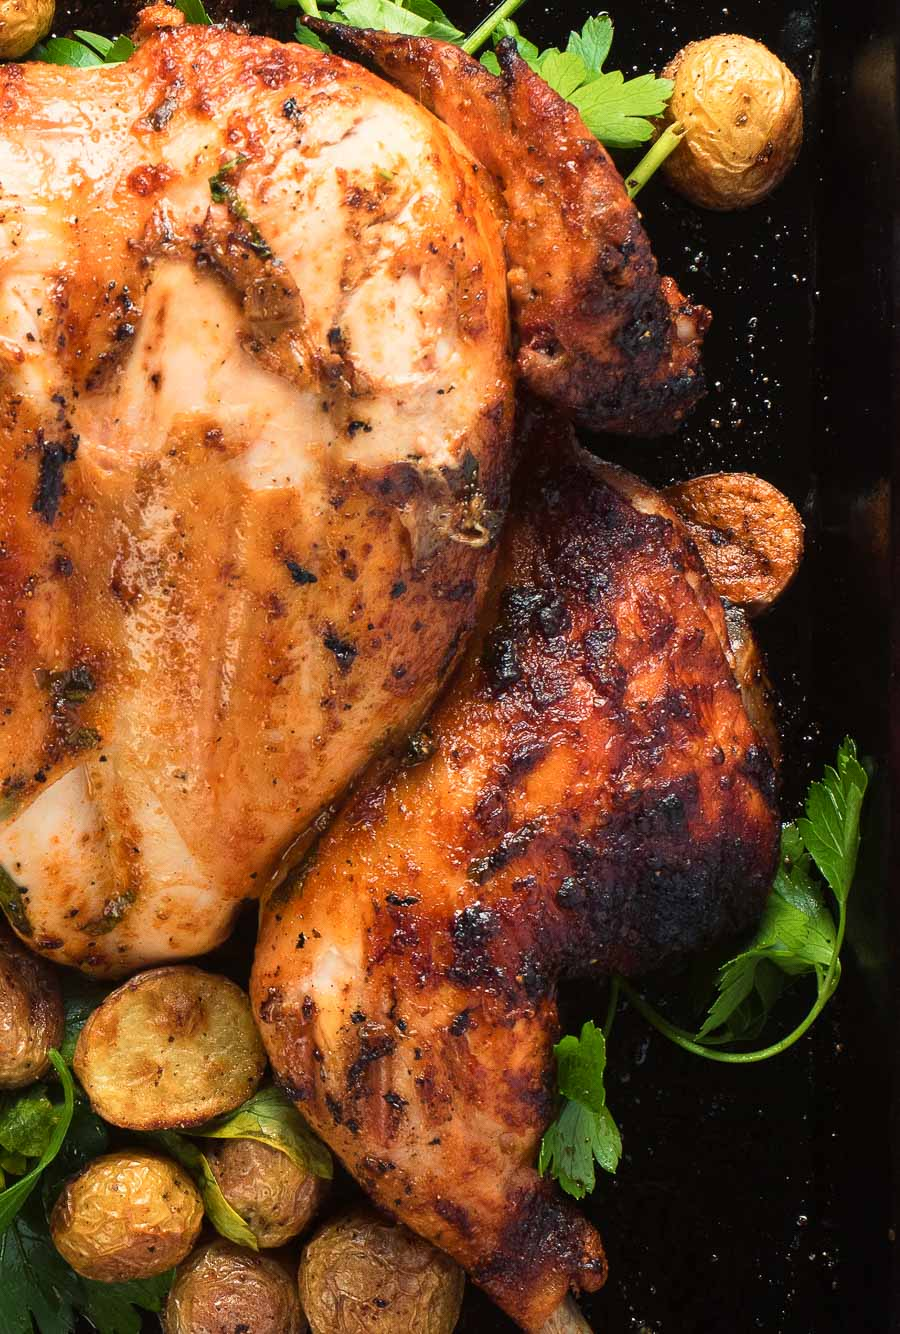 Portuguese chicken and potatoes from above - breast and thigh